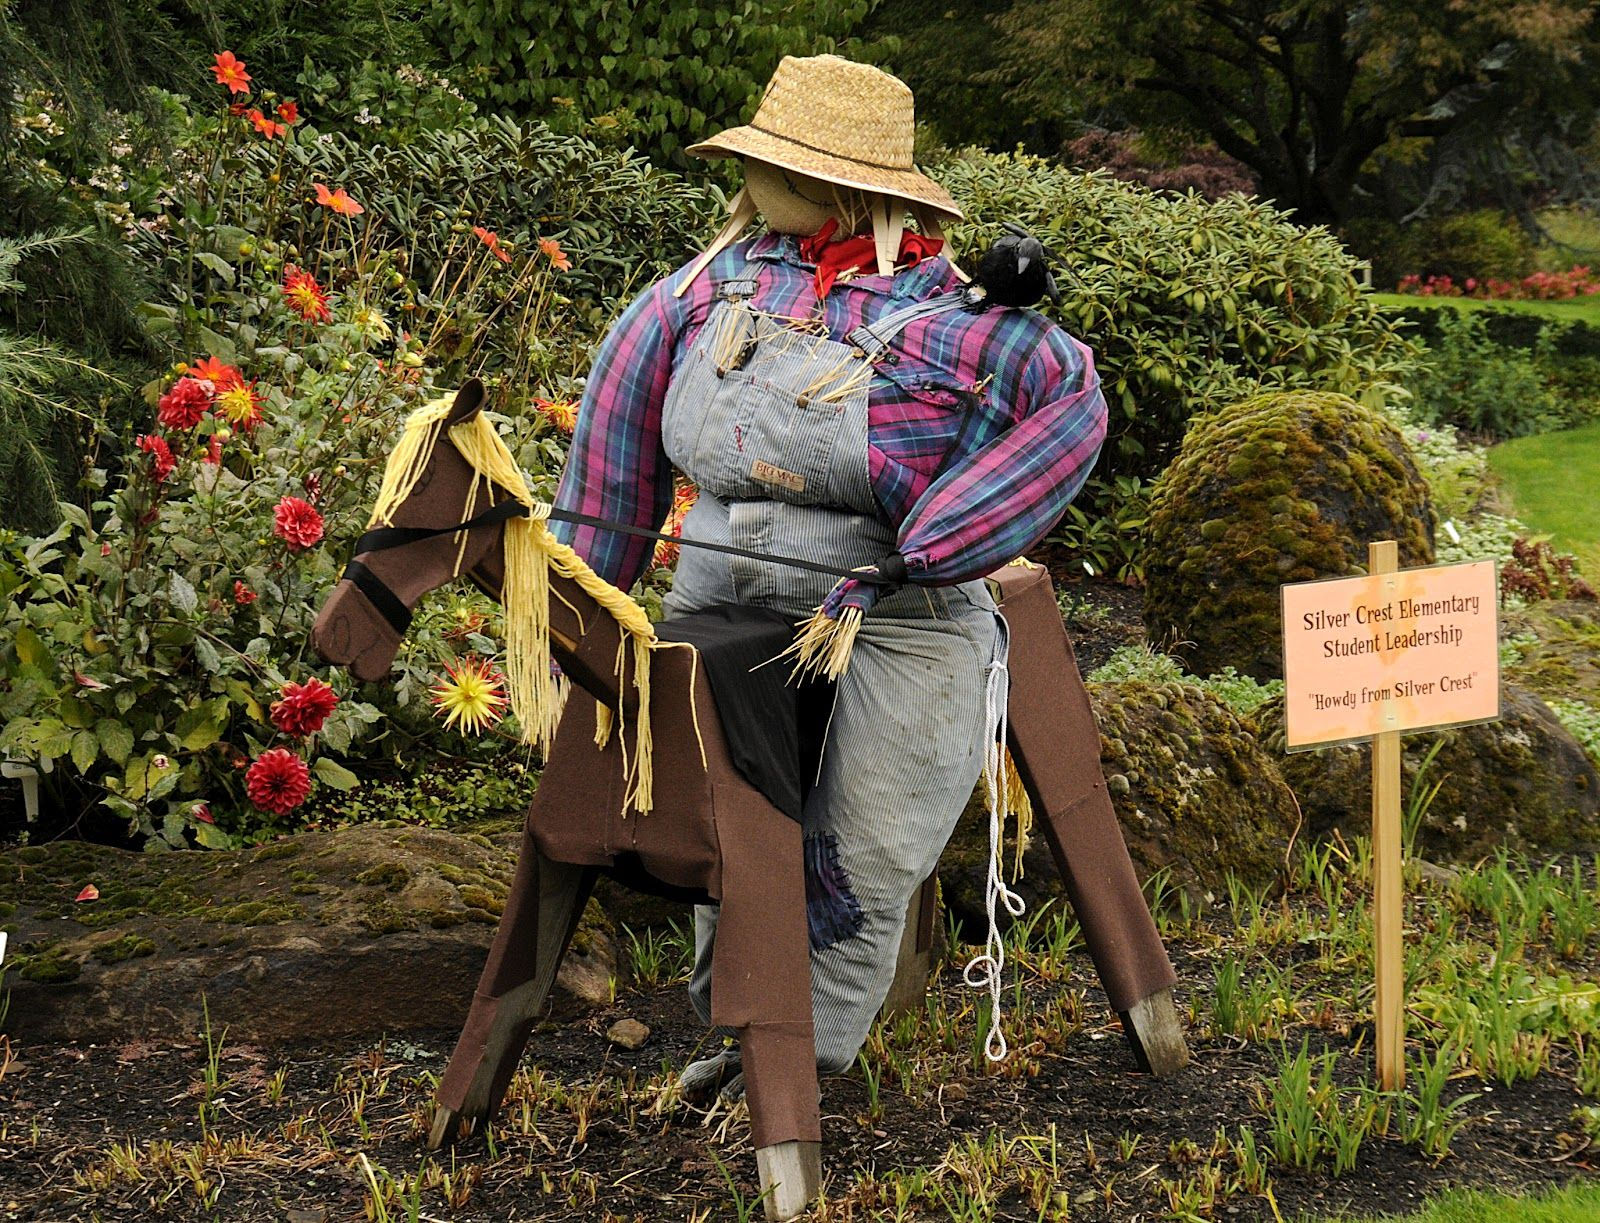 Pin by The Oregon Garden & Resort on Scarecrows in the Garden Event ...